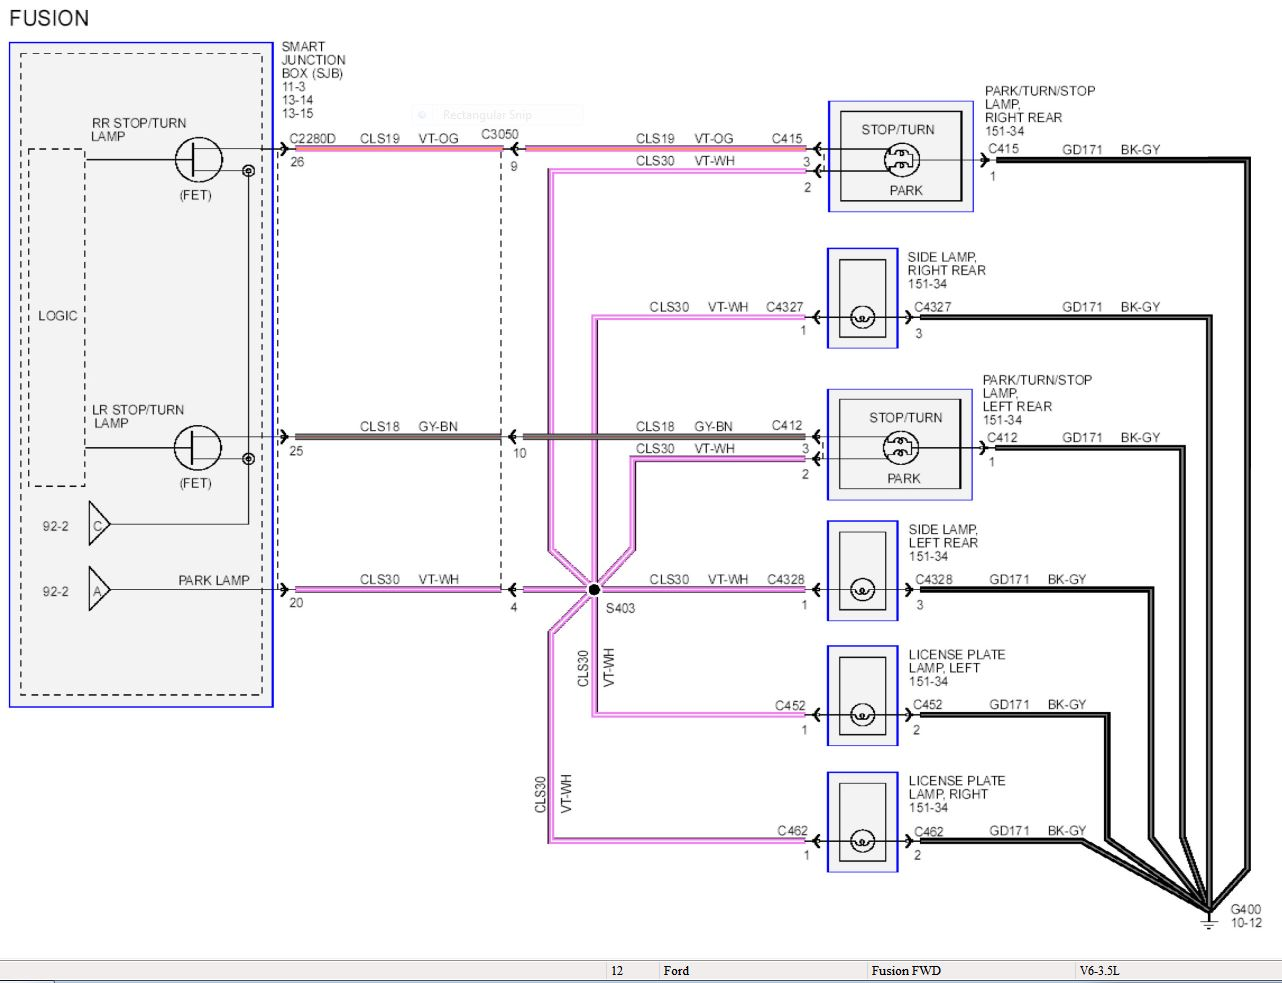 Enjoyable Ford Would Be Possible To Re Post The 2014 Fusion Wiring Diagram Wiring Cloud Loplapiotaidewilluminateatxorg